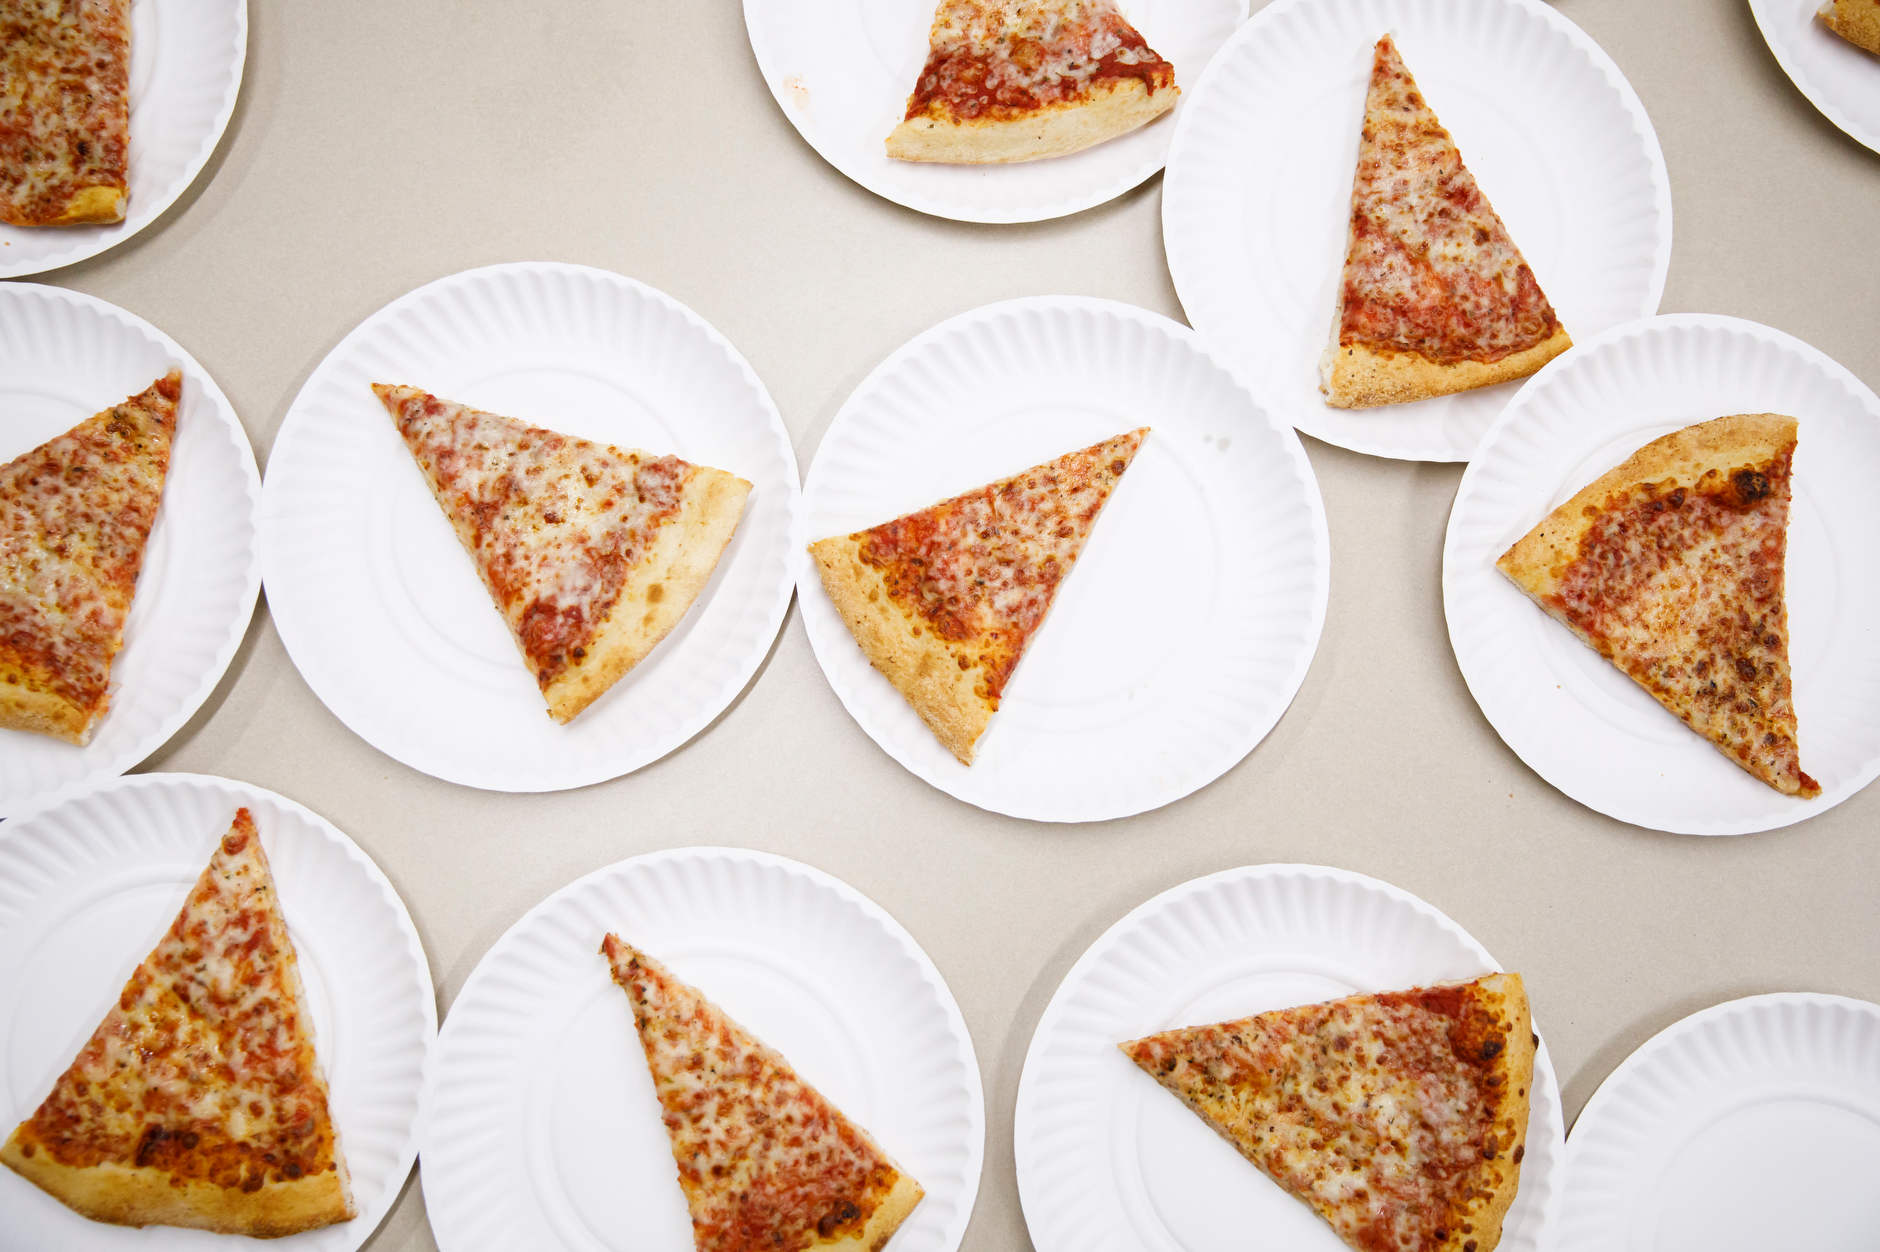 Pizza sits on a table during the Herman B House Party in the Wells Library at IU Bloomington on Thursday, Aug. 22, 2019. (James Brosher/Indiana University)